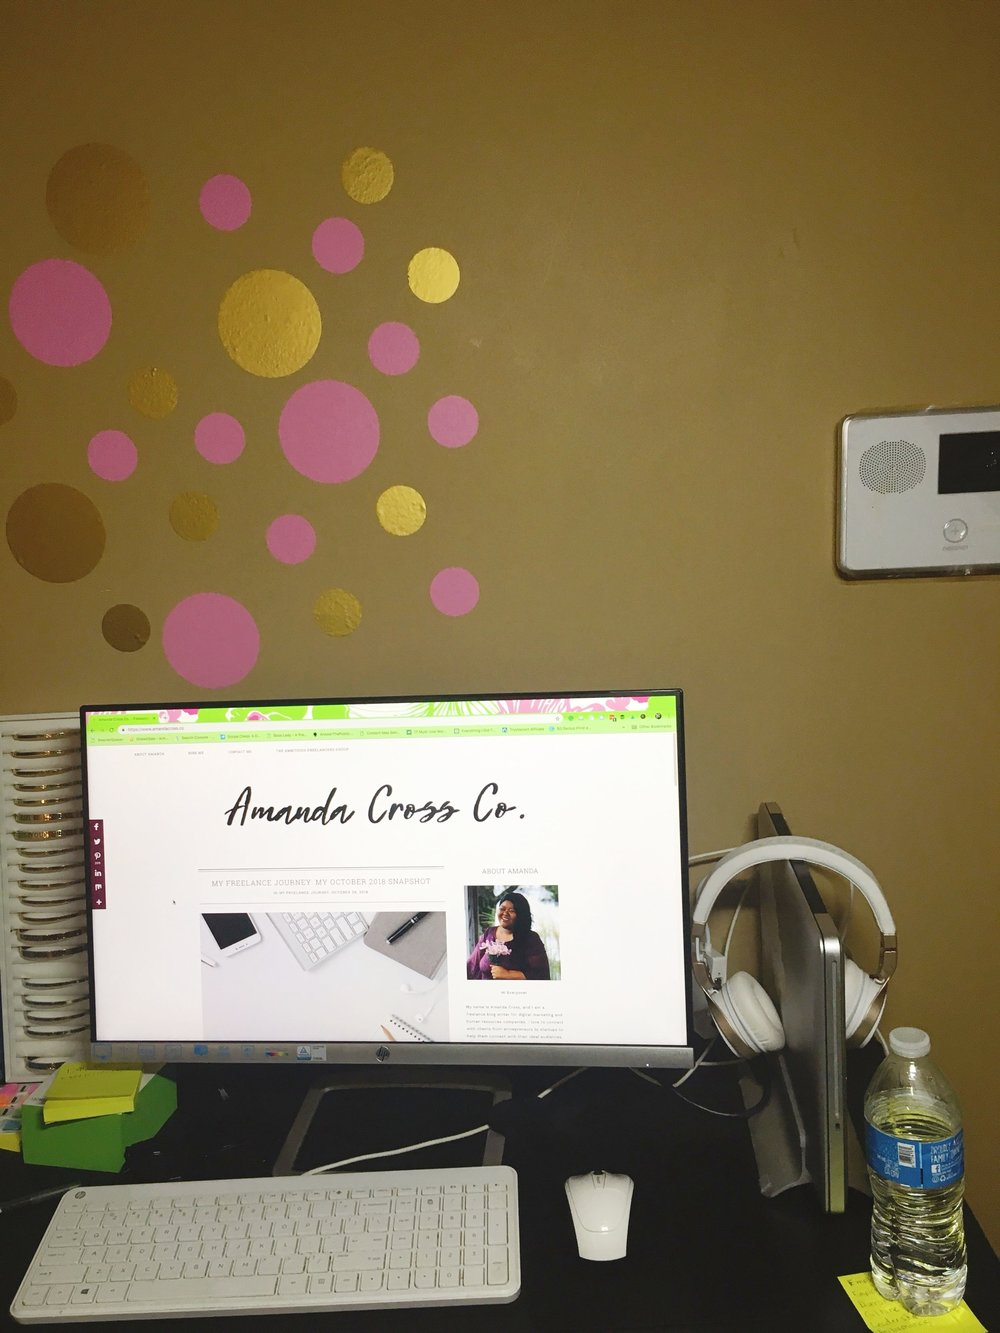 Amanda Cross Co's desk setup with macbook pro and external monitor.